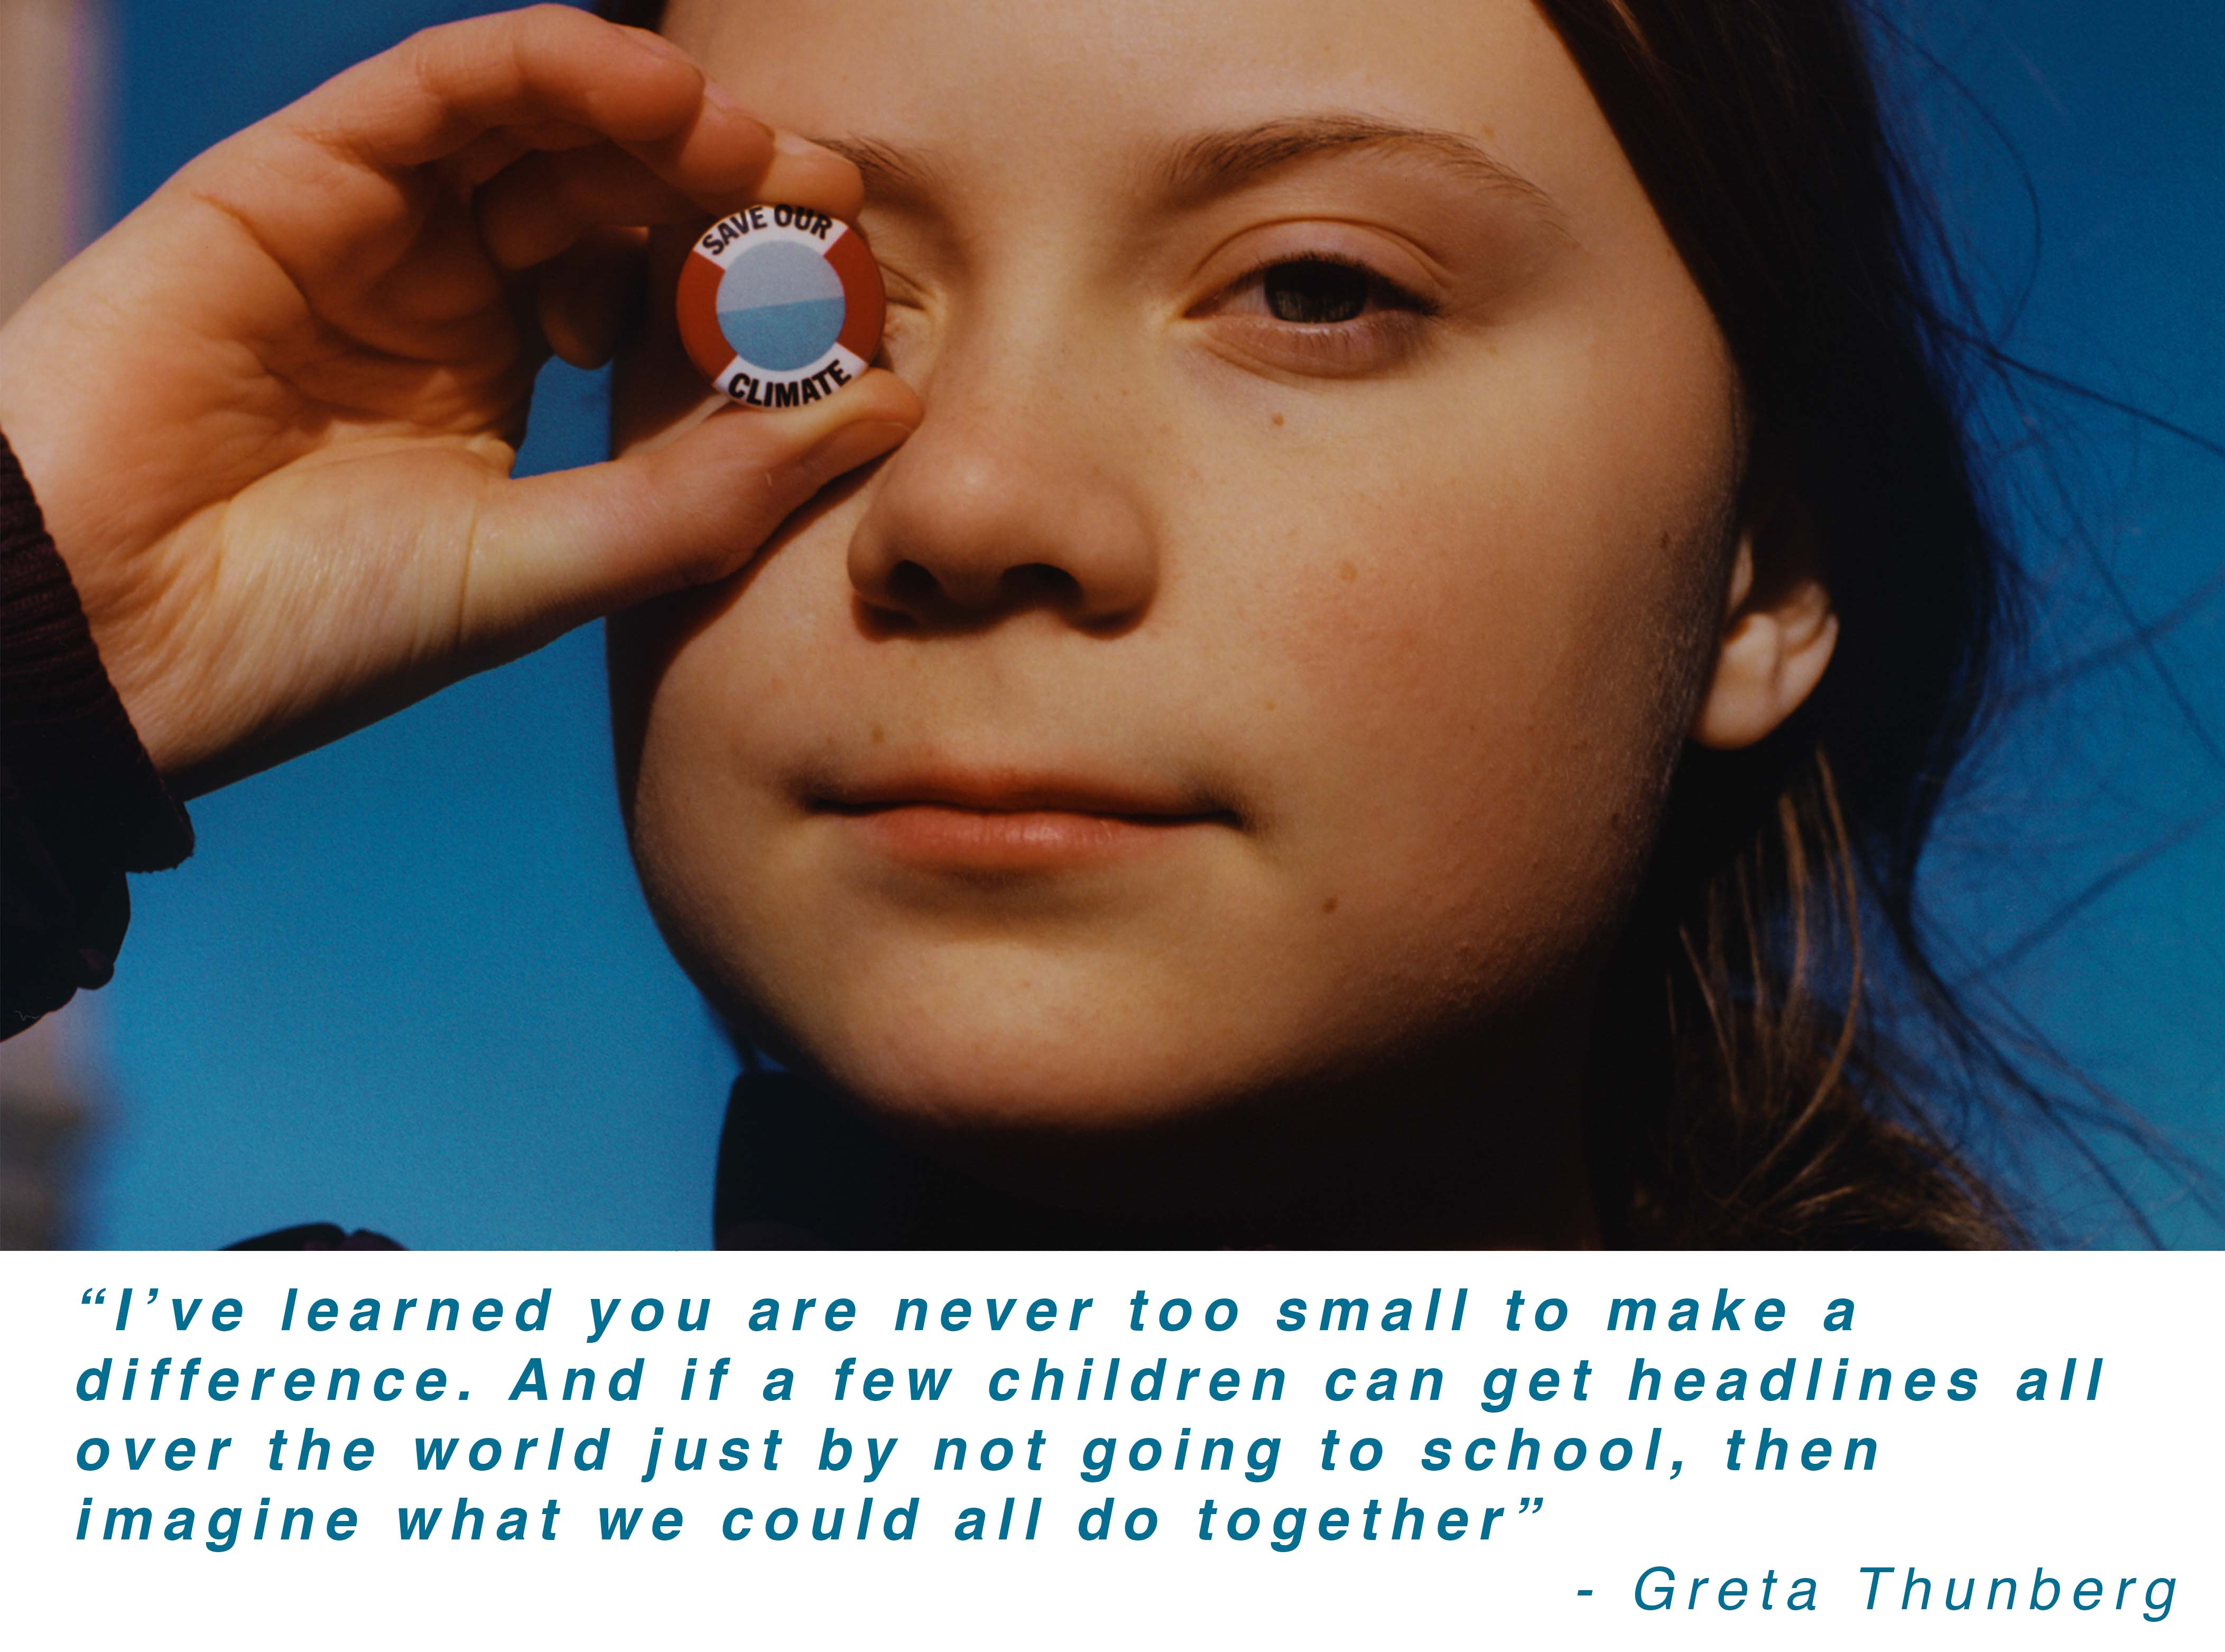 You are never too small to make a difference